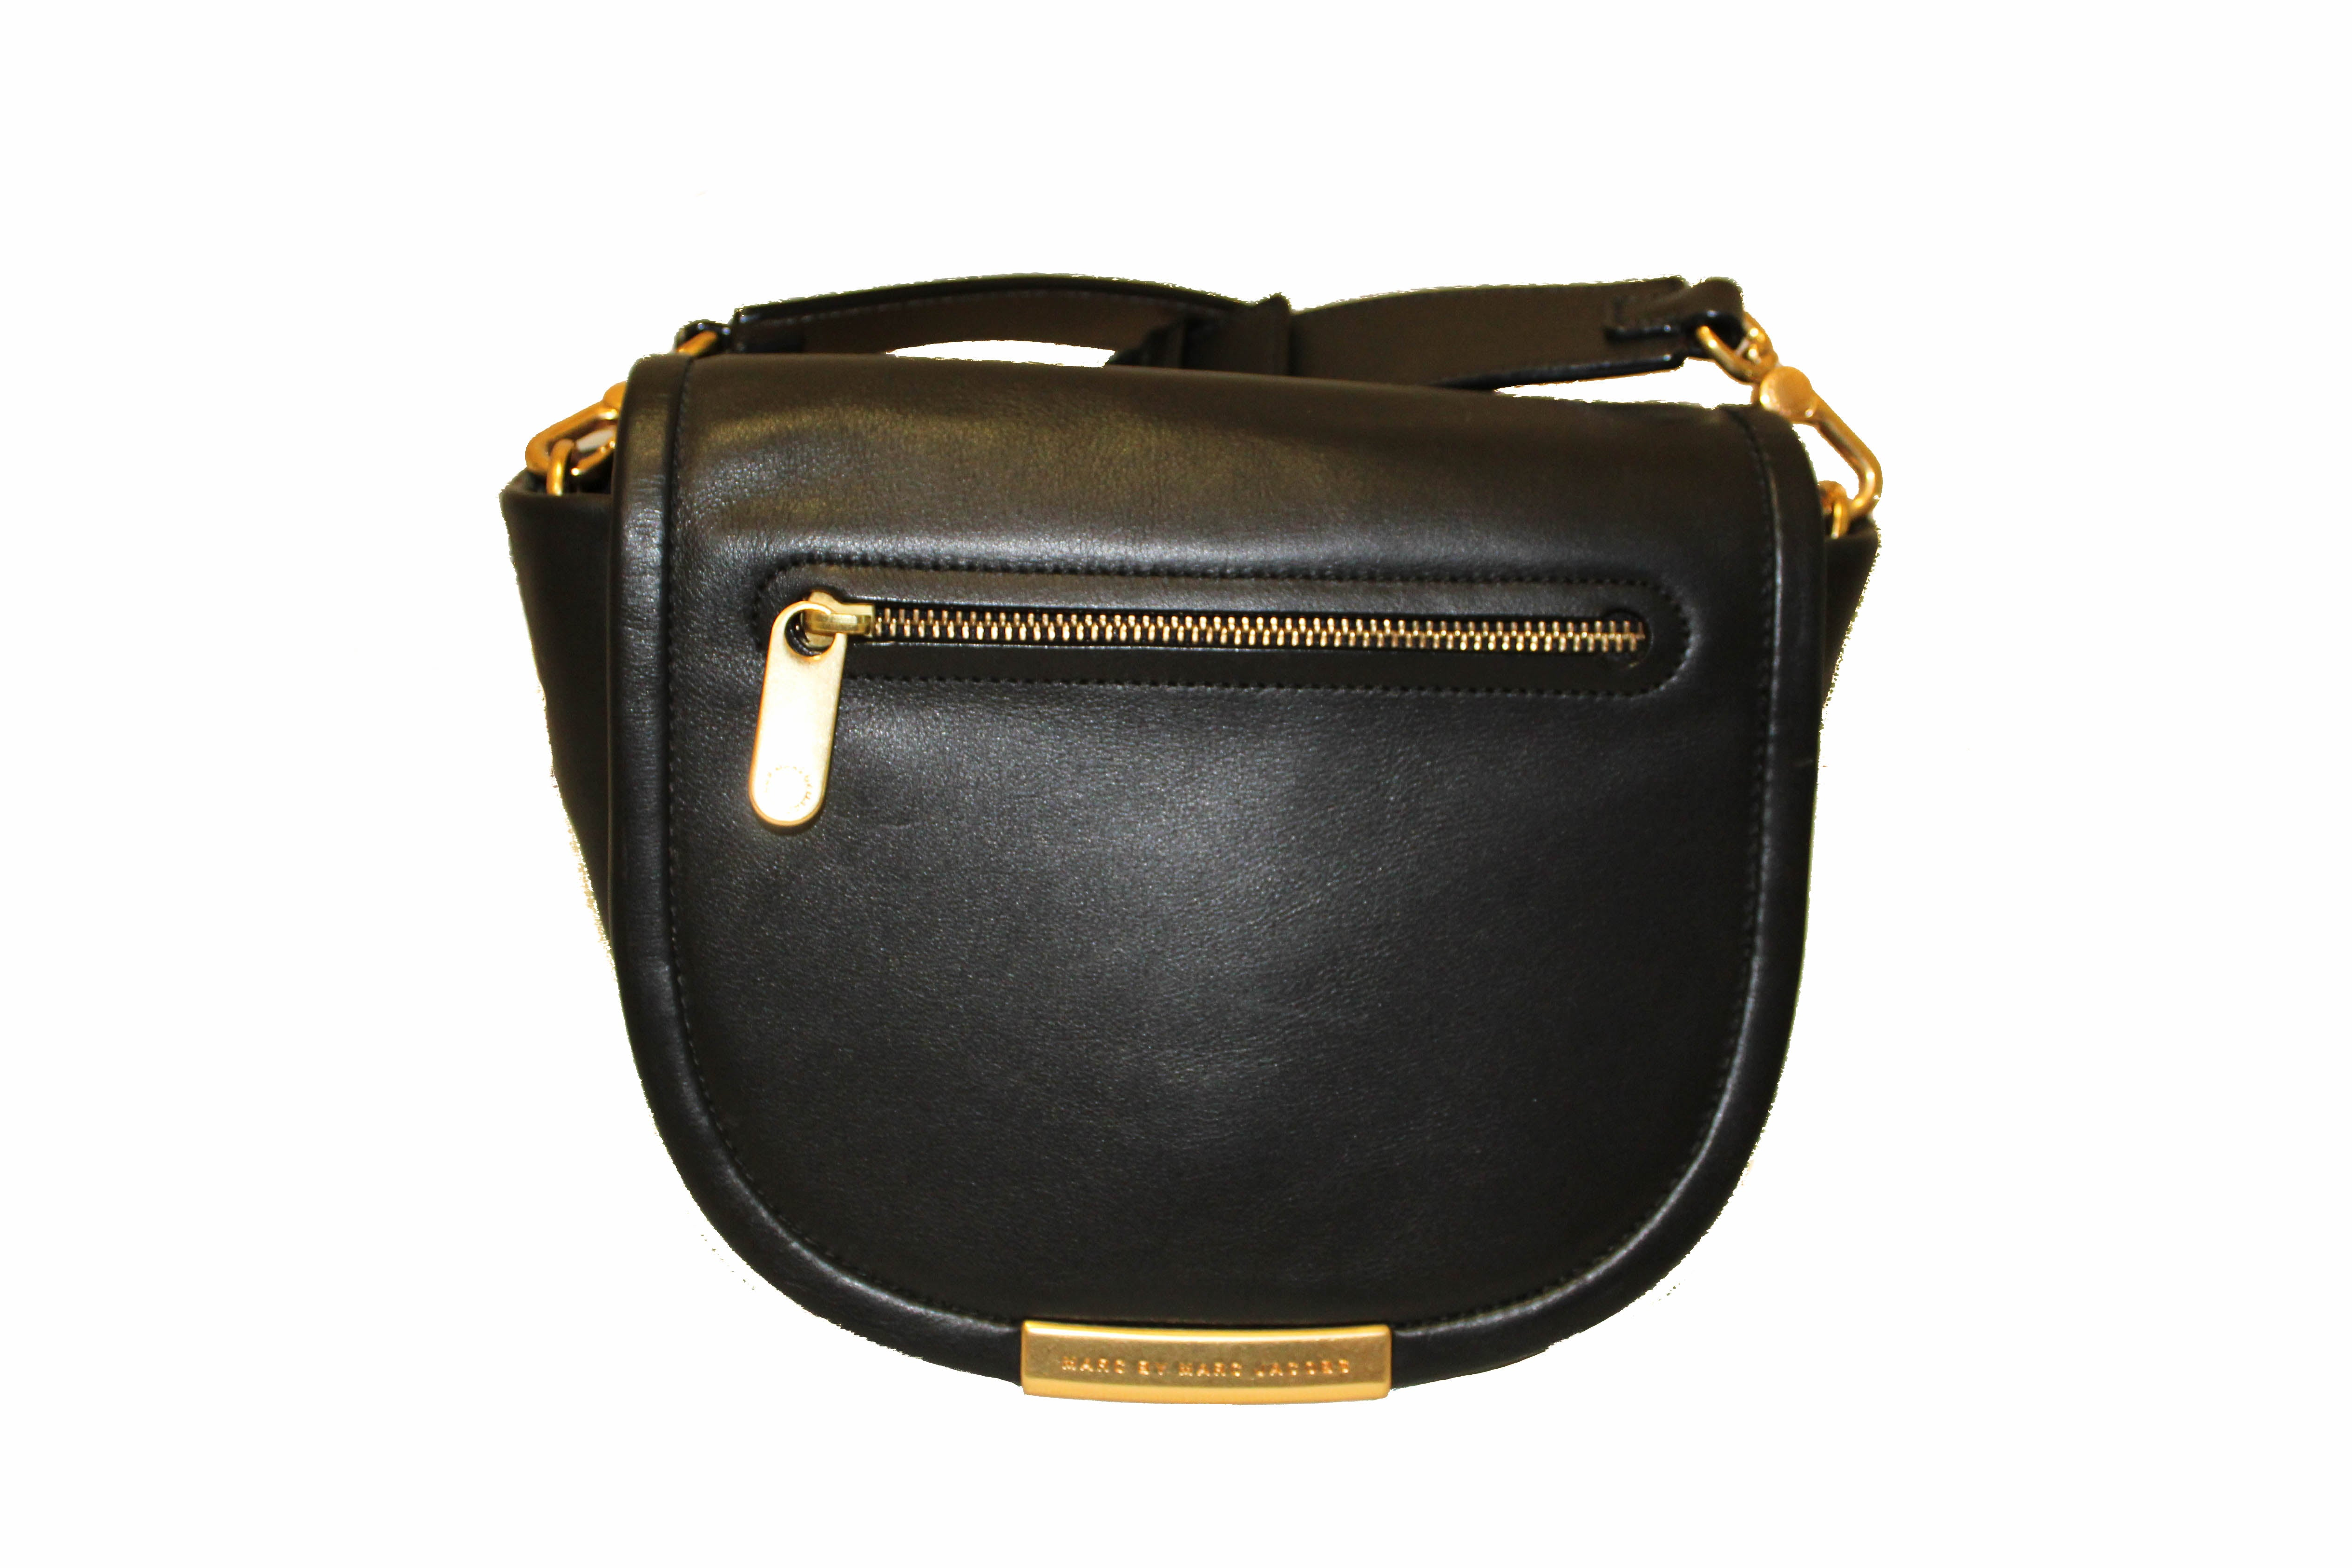 Authentic Marc Jacobs Black Calfskin Leather Crossbody Bag